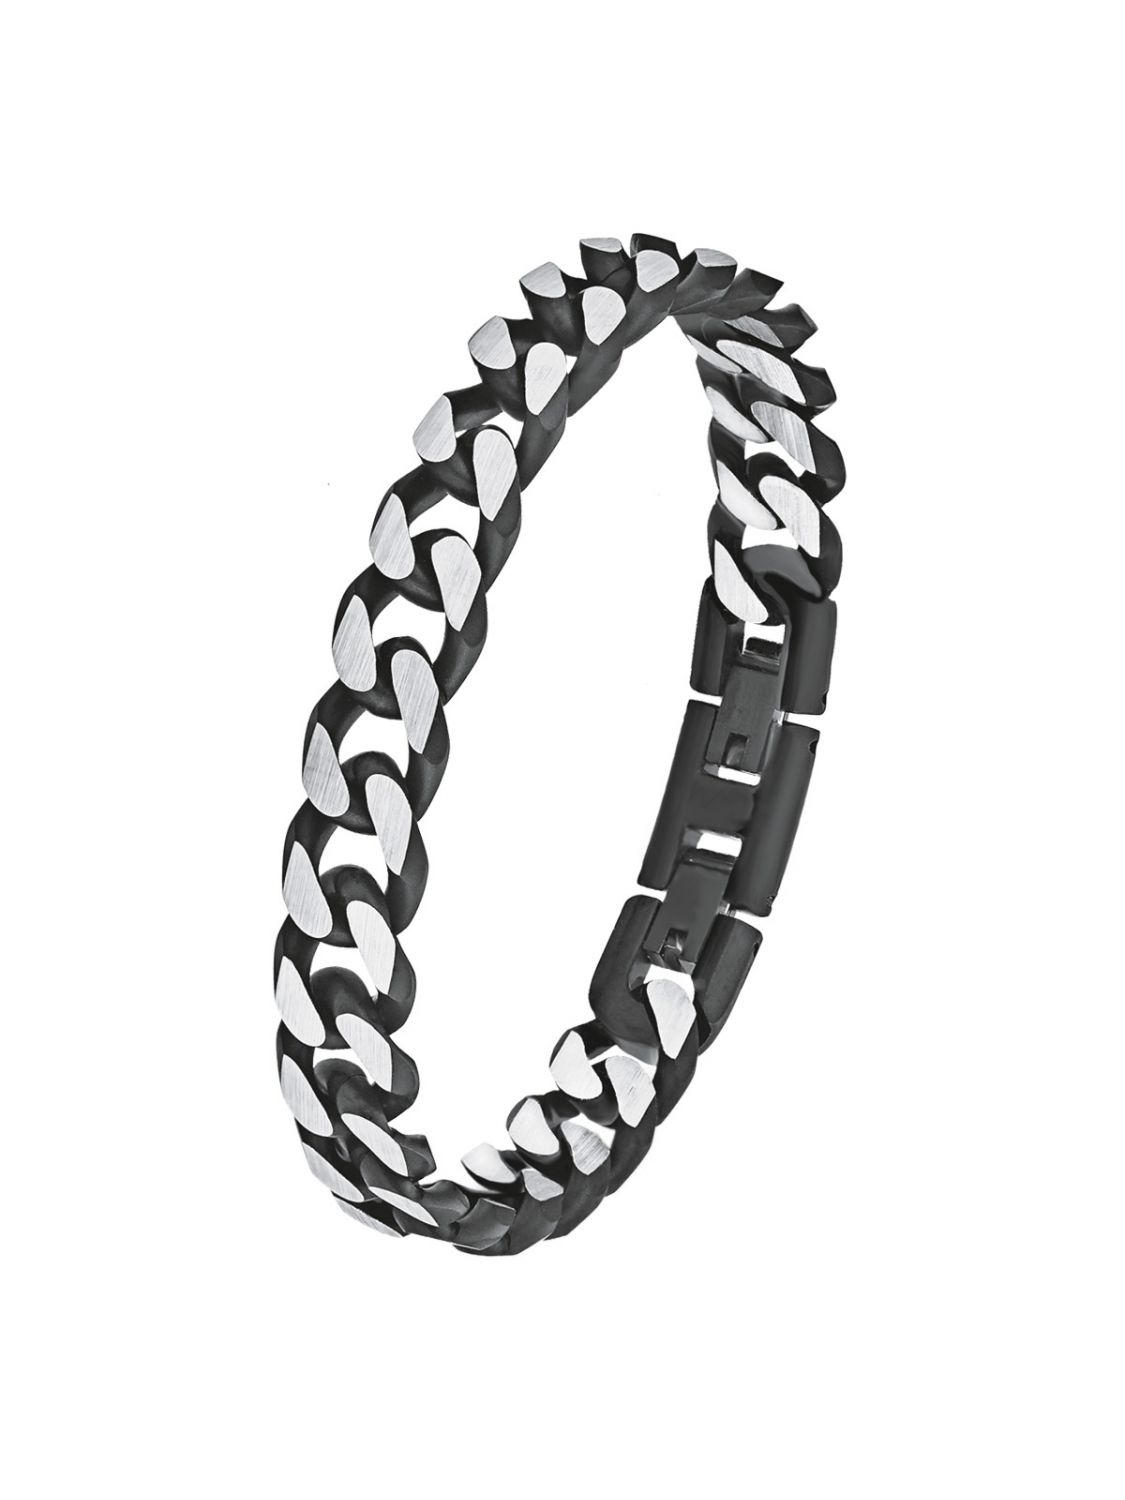 0bc8331781bed s.Oliver 9954490 Men's Curb Chain Bracelet Stainless Steel Black